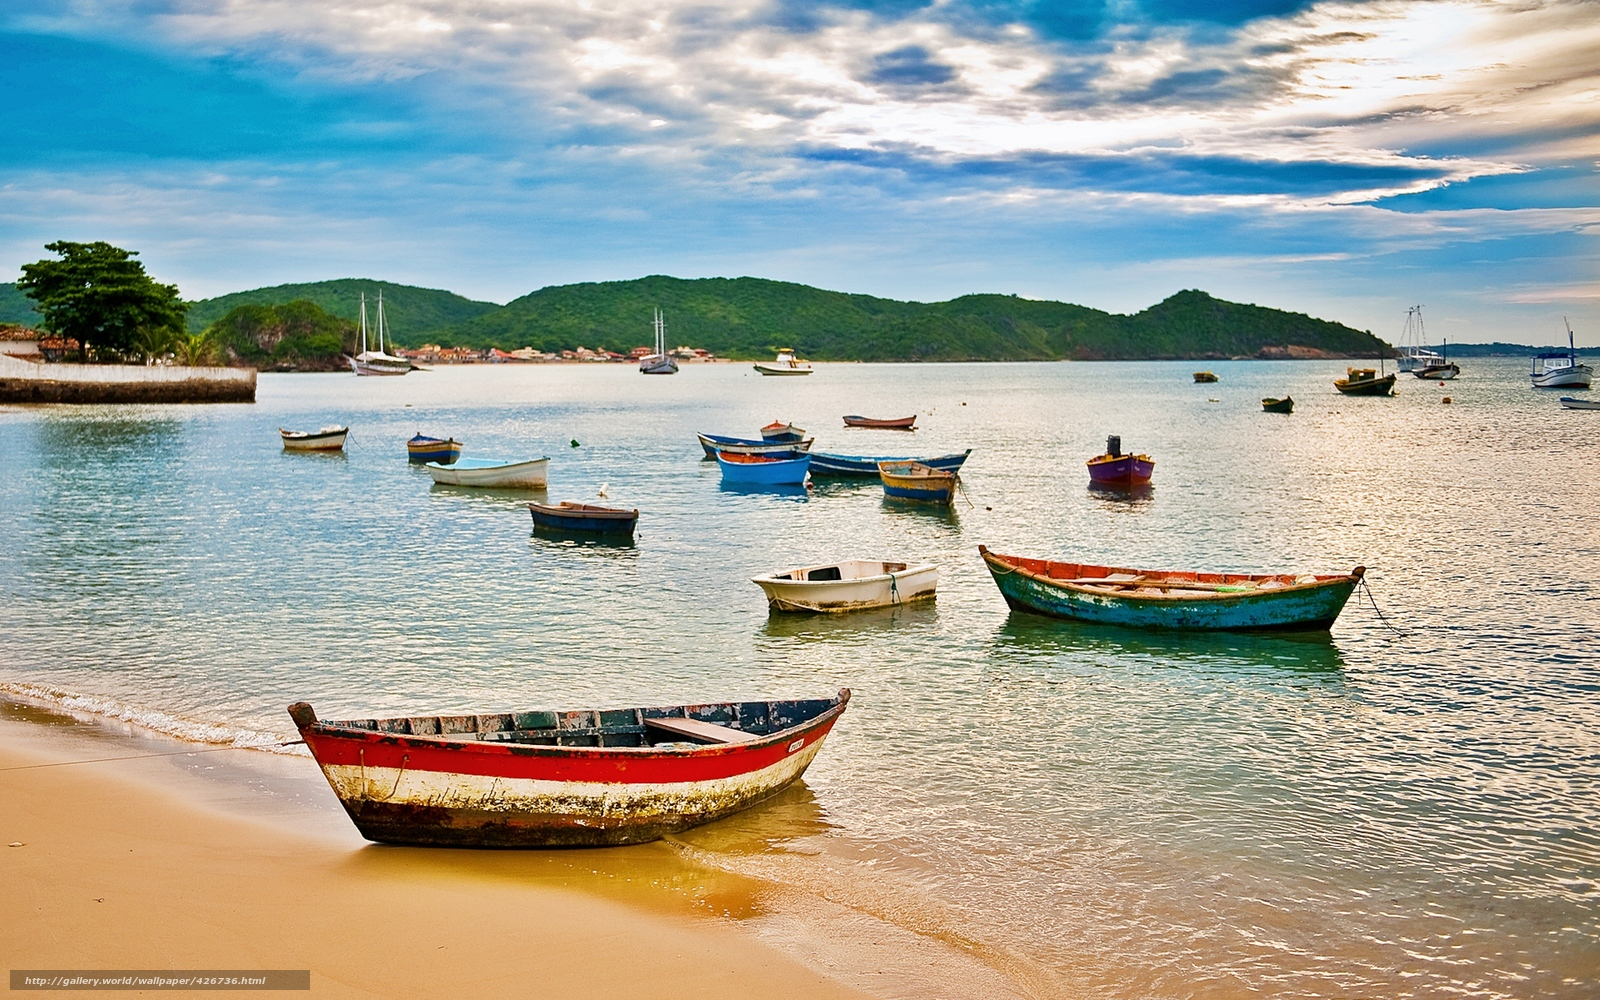 Download wallpaper buzios brazil beach boats desktop 1600x1000